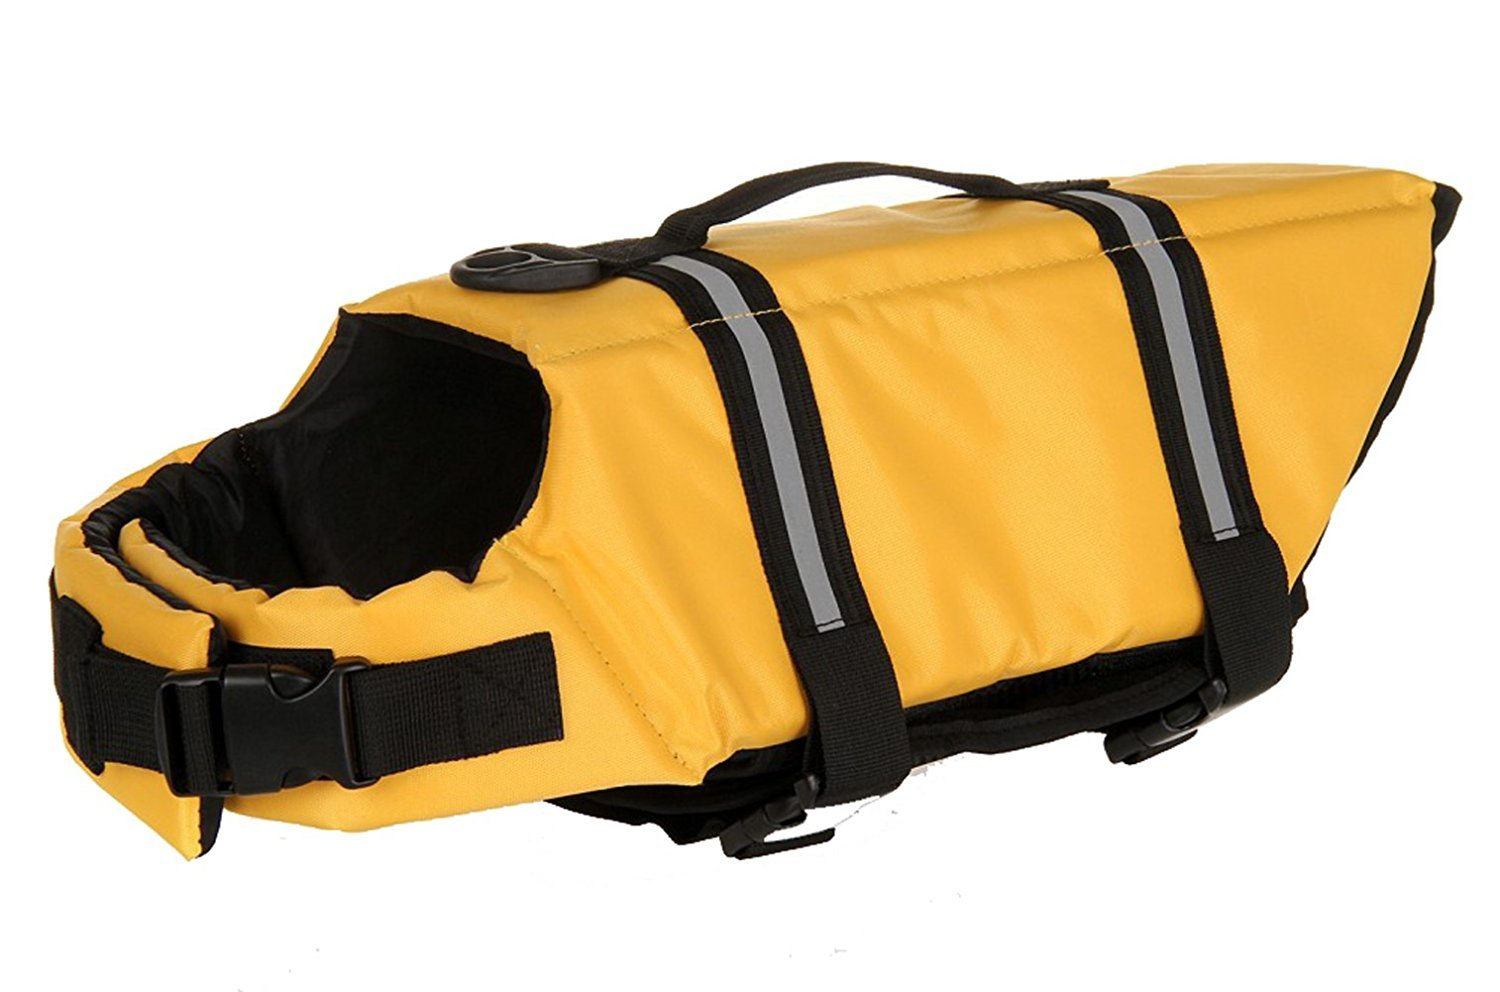 PESTON Dog Pet Puppy Boat Saver Life Jacket Vest Reflective Strip